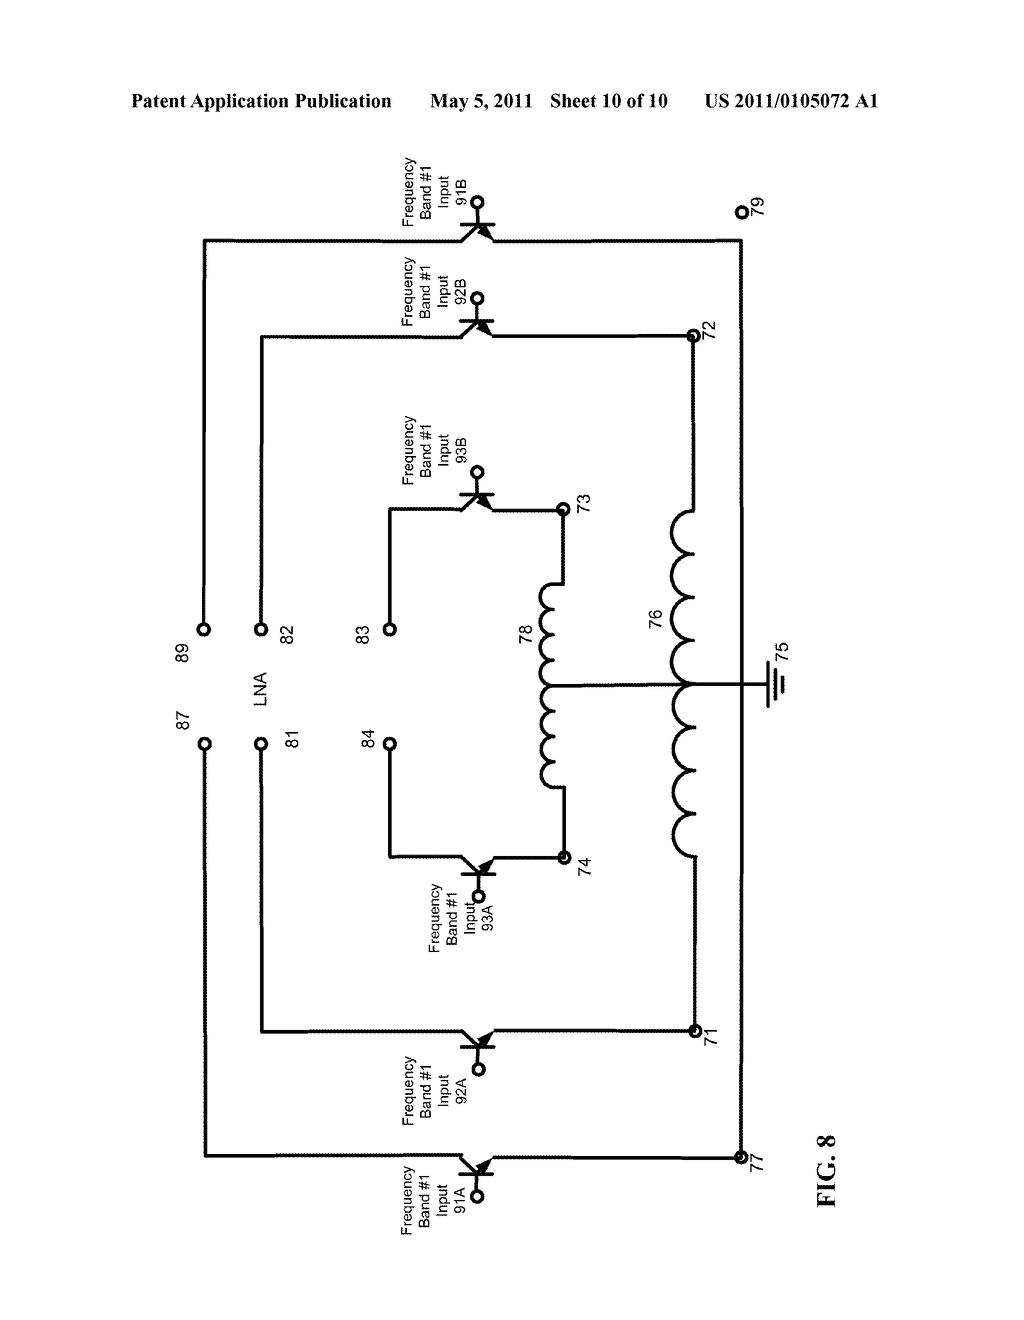 Dual Inductor Circuit For Multi Band Wireless Communication Device Diagram Schematic And Image 11